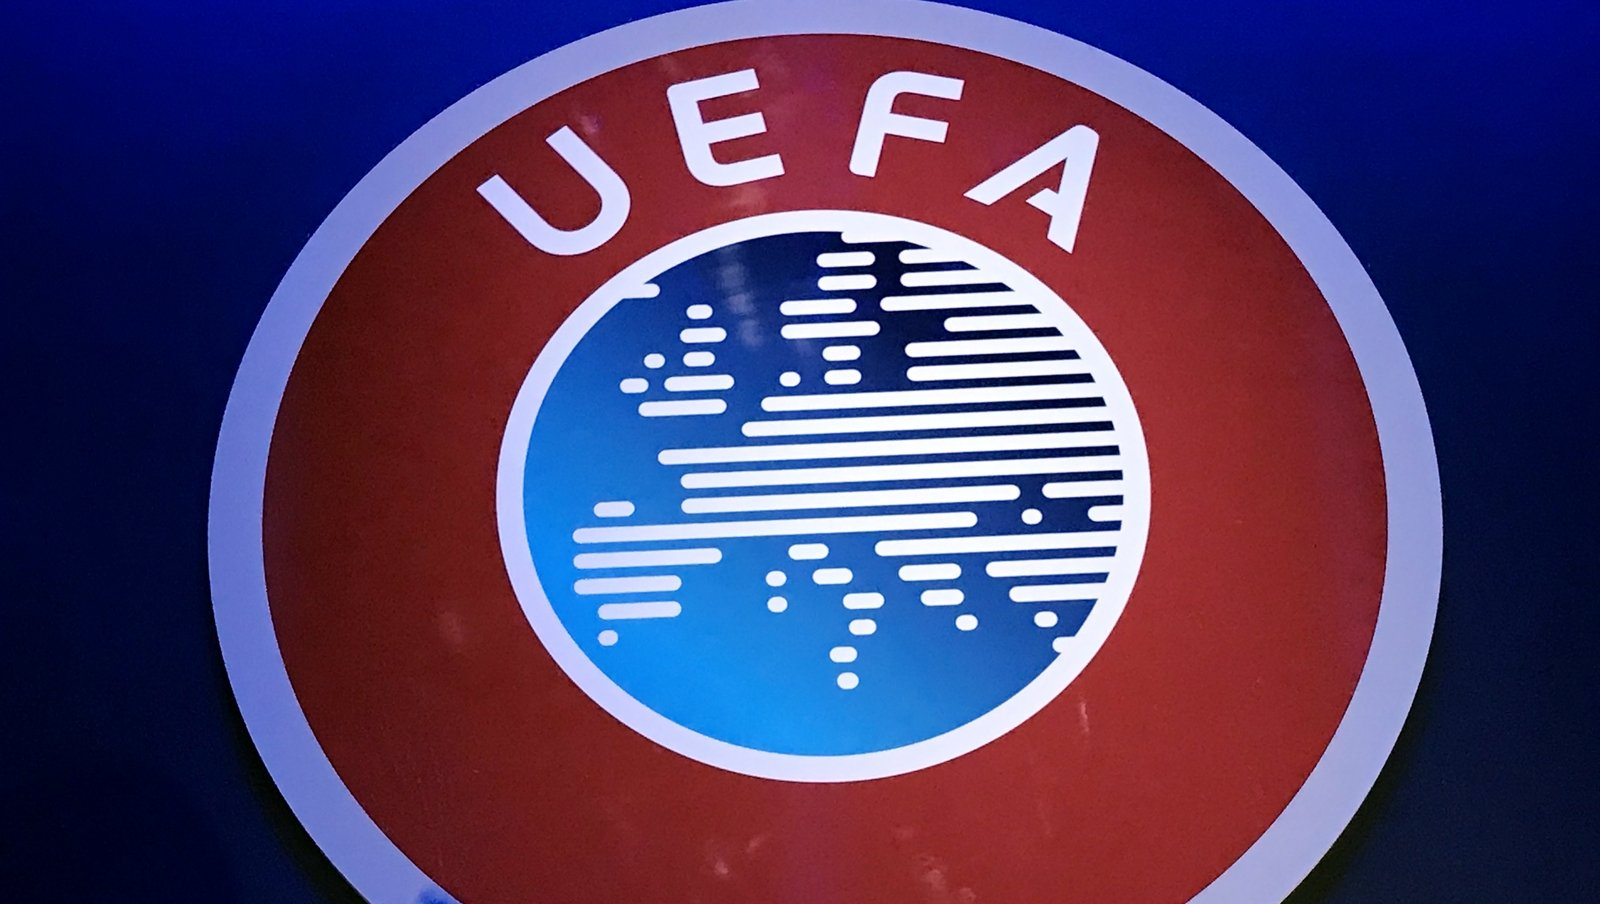 UEFA secures court yelp to block illegal streaming